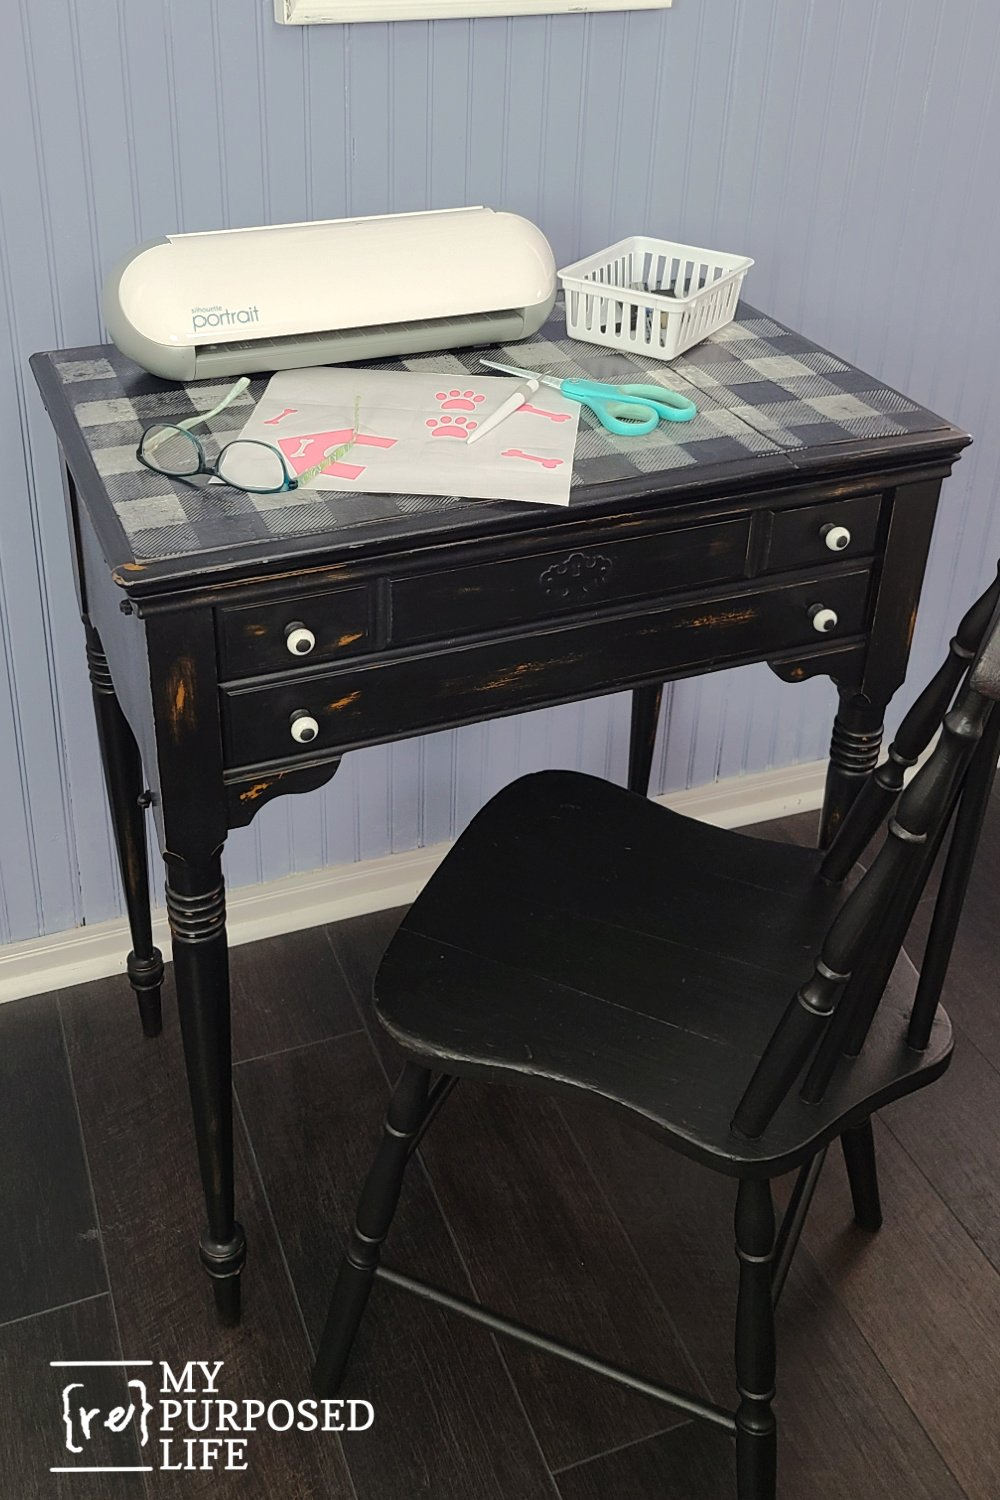 A sewing machine cabinet turned into a craft table. Also perfect as a laptop desk or a homework station for the kids. Hidden storage is a bonus! How to disguise a really bad table top! #MyRepurposedLife #repurposed #furniture #sewingcabinet #crafttable via @repurposedlife